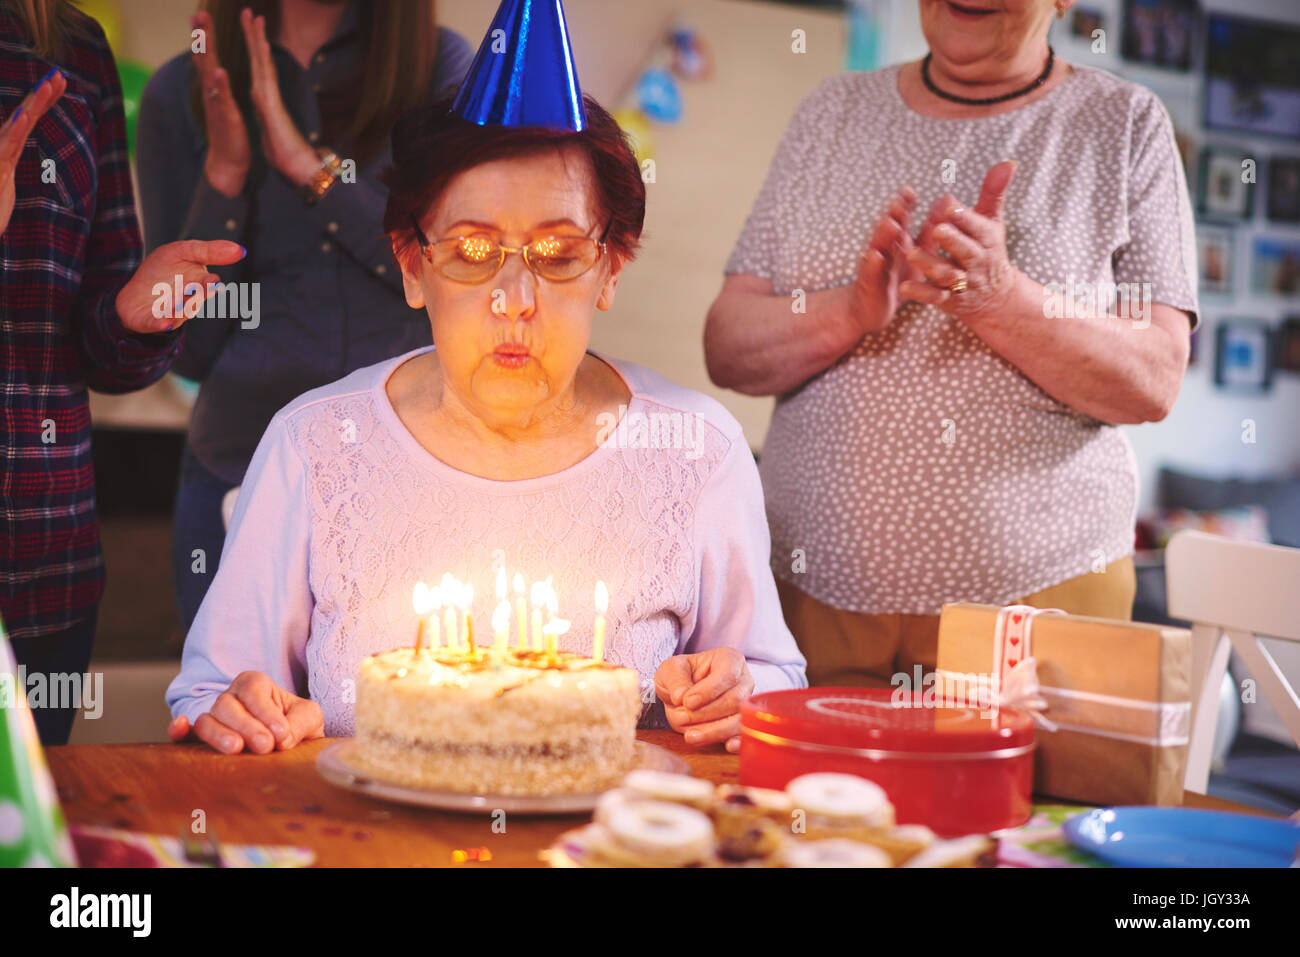 Senior woman blowing out candles on birthday cake at party - Stock Image